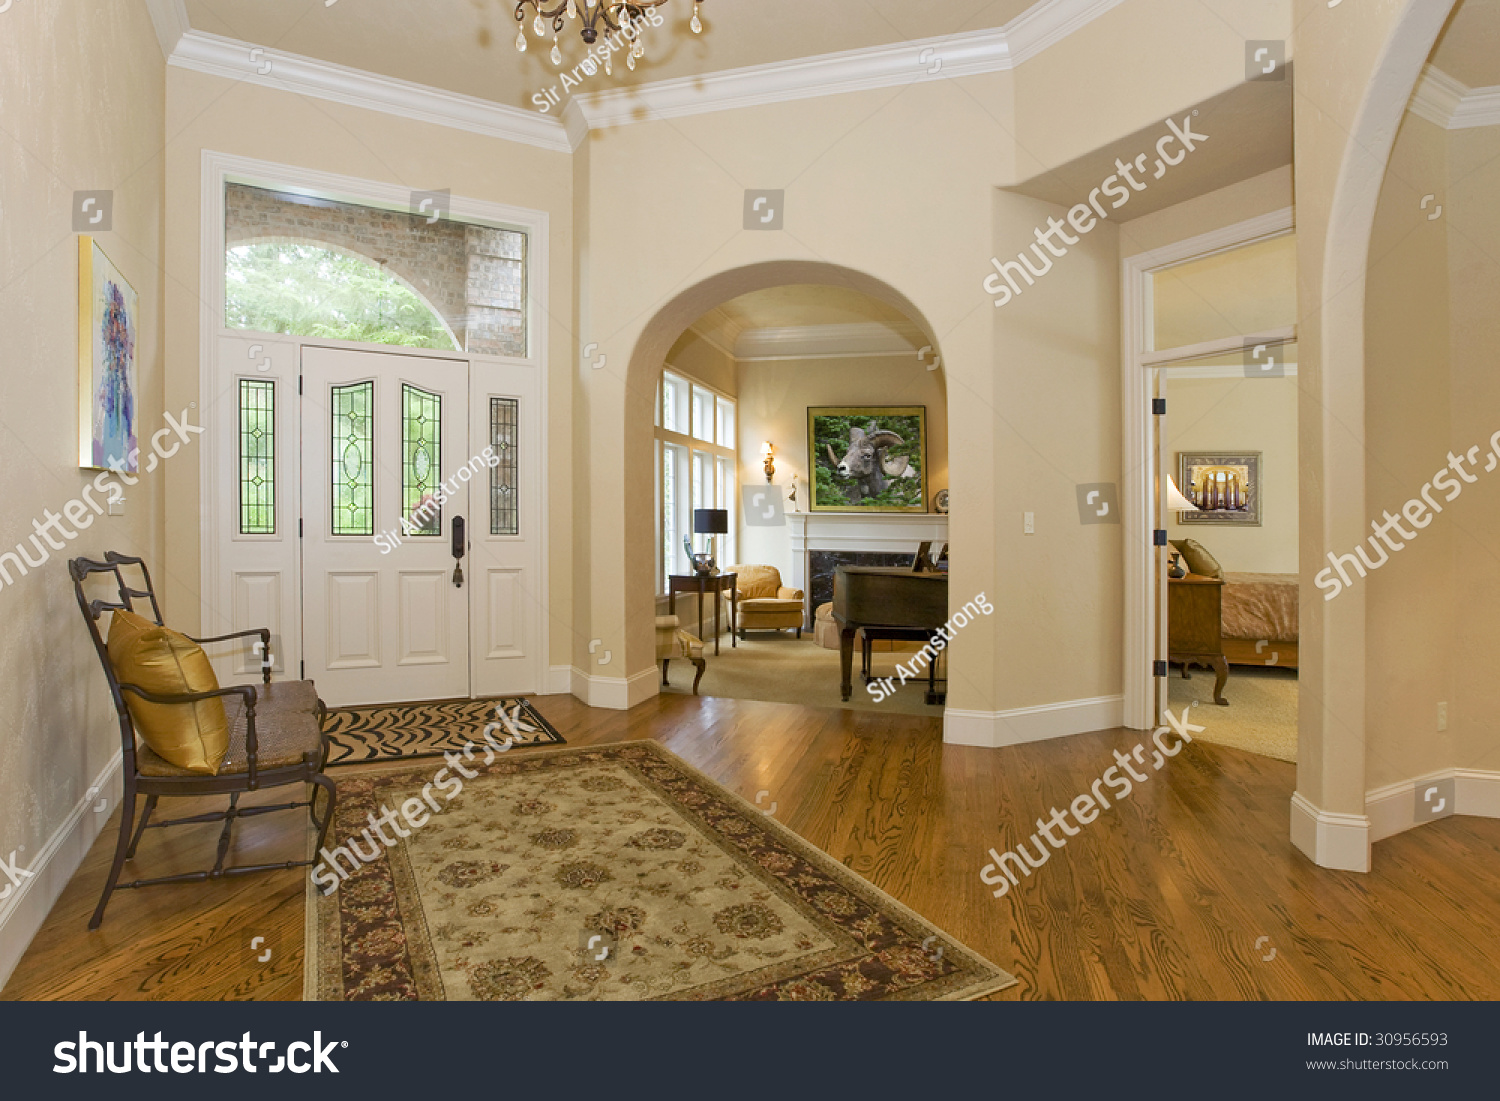 entry hall stock photo 30956593 - shutterstock